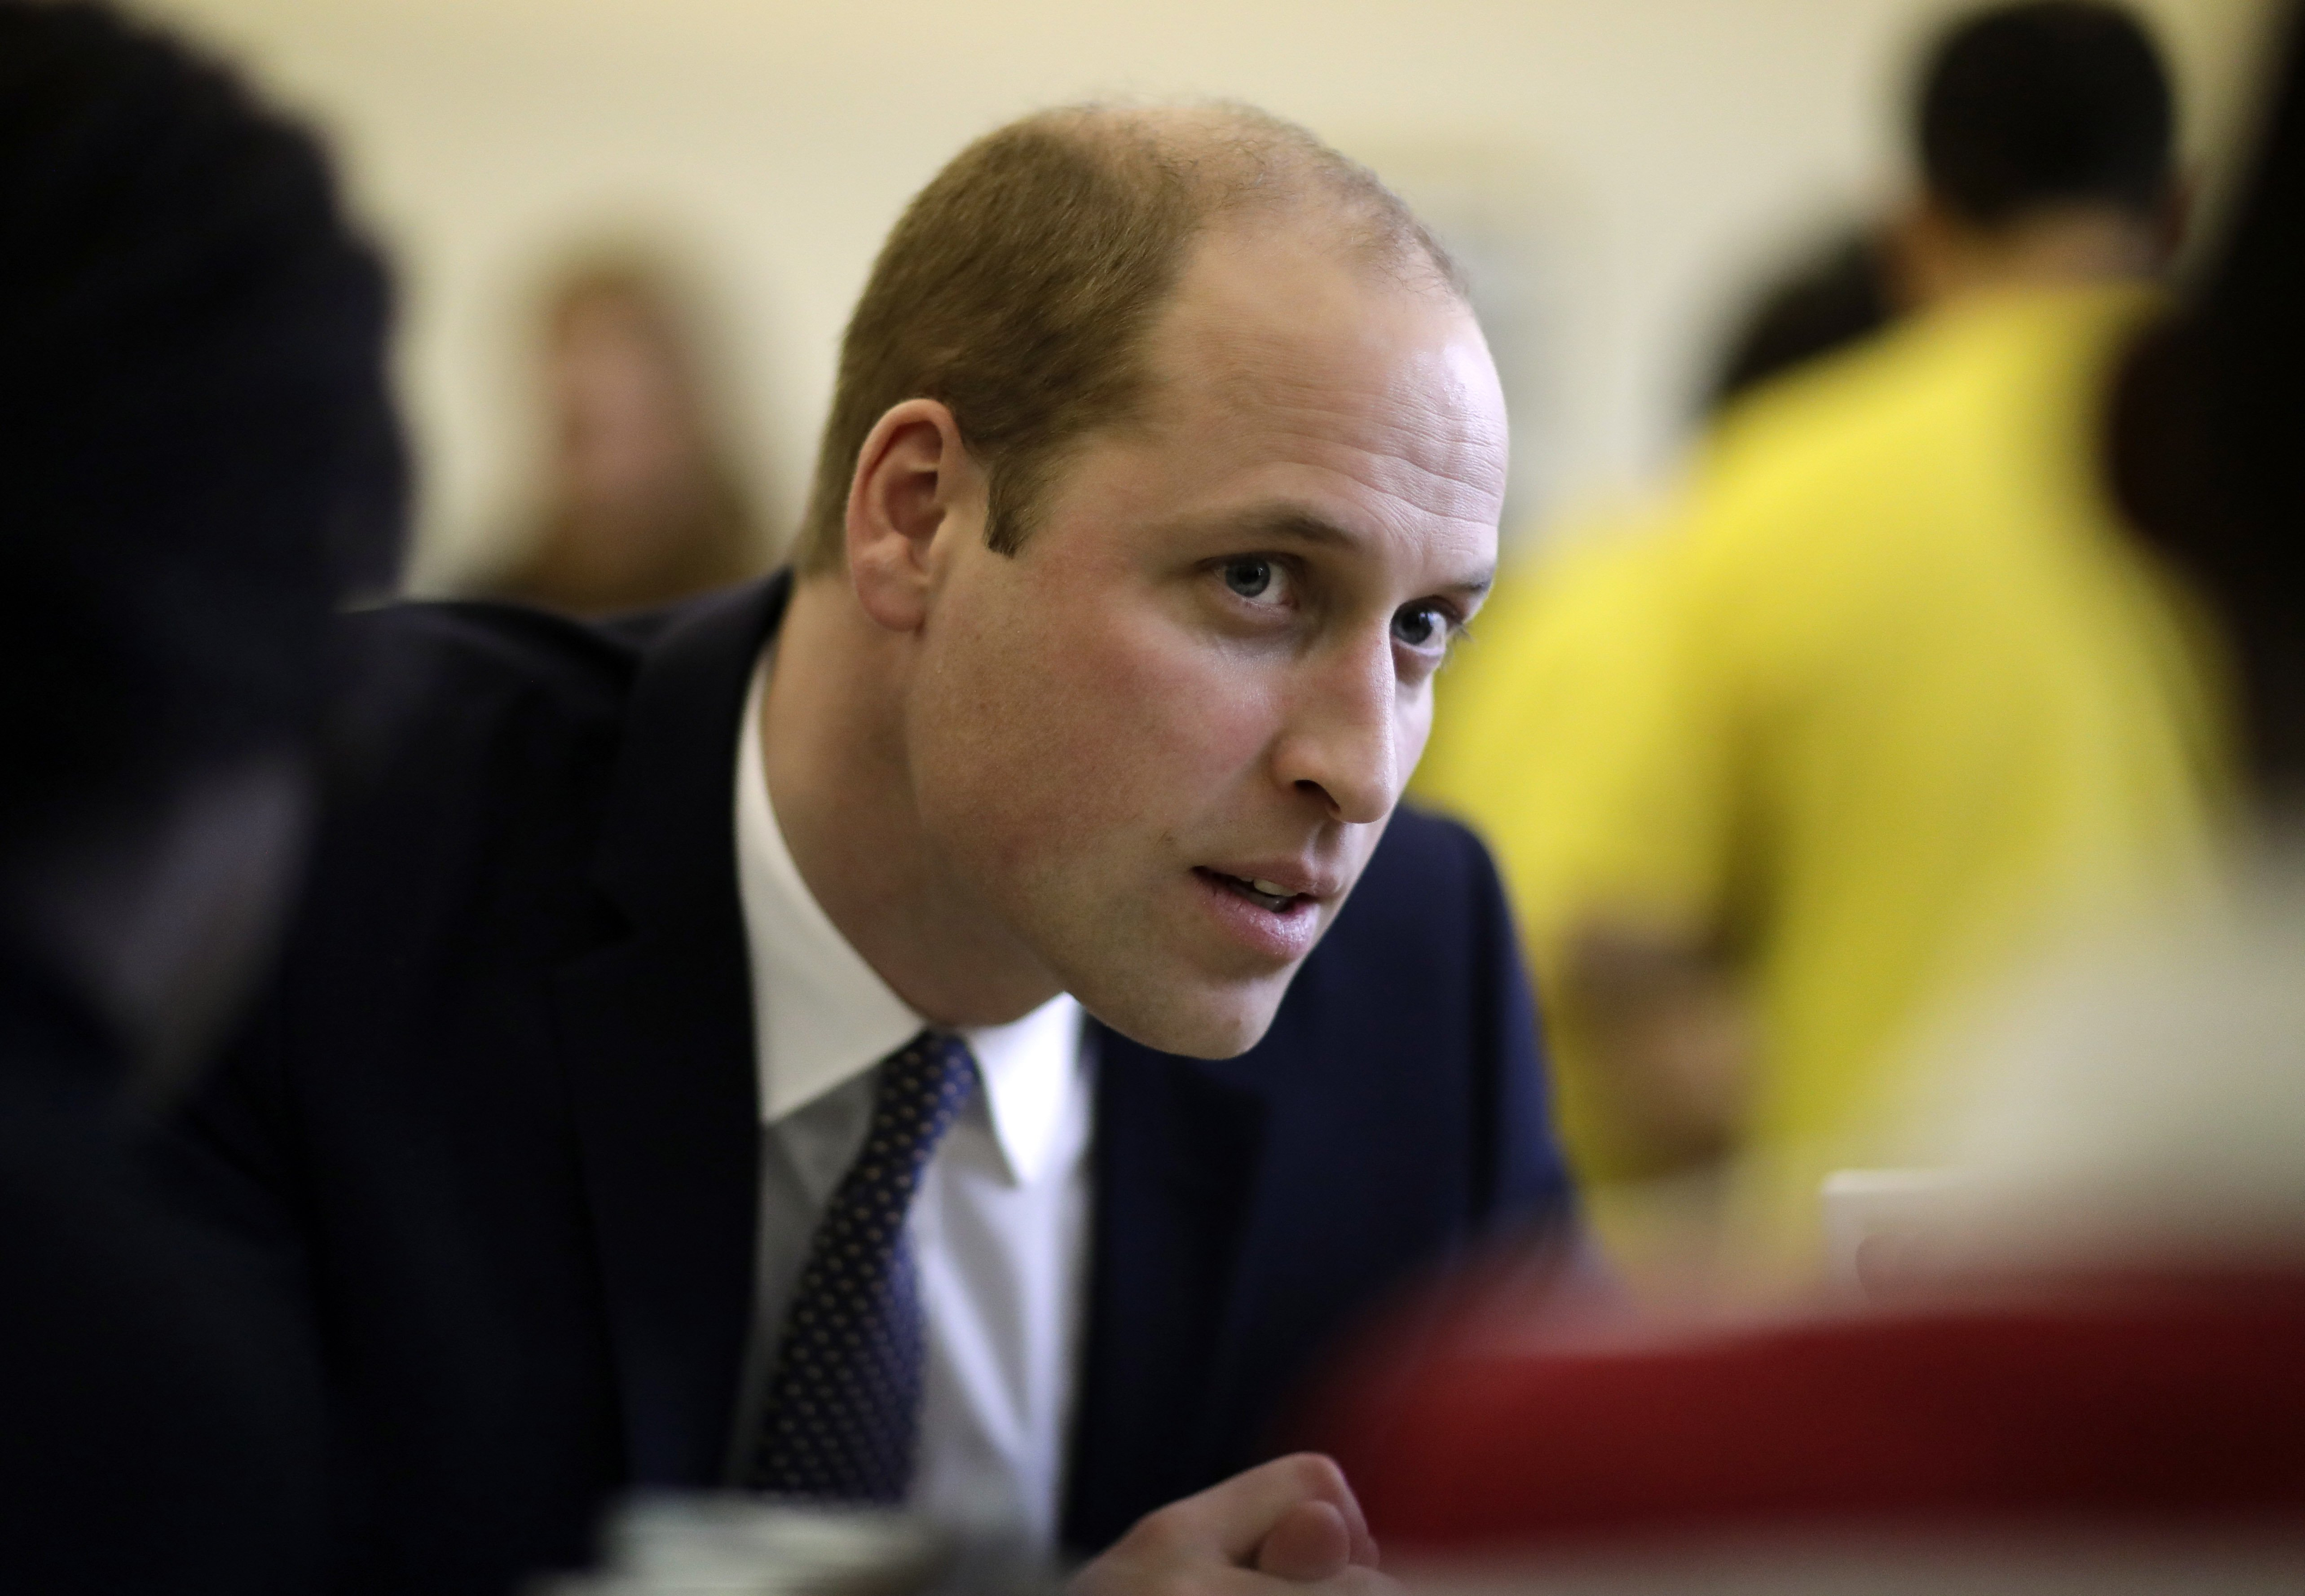 Prince William, Duke of Cambridge speaks to families at the Child Bereavement UK Centre in Stratford on January 11, 2017 in London